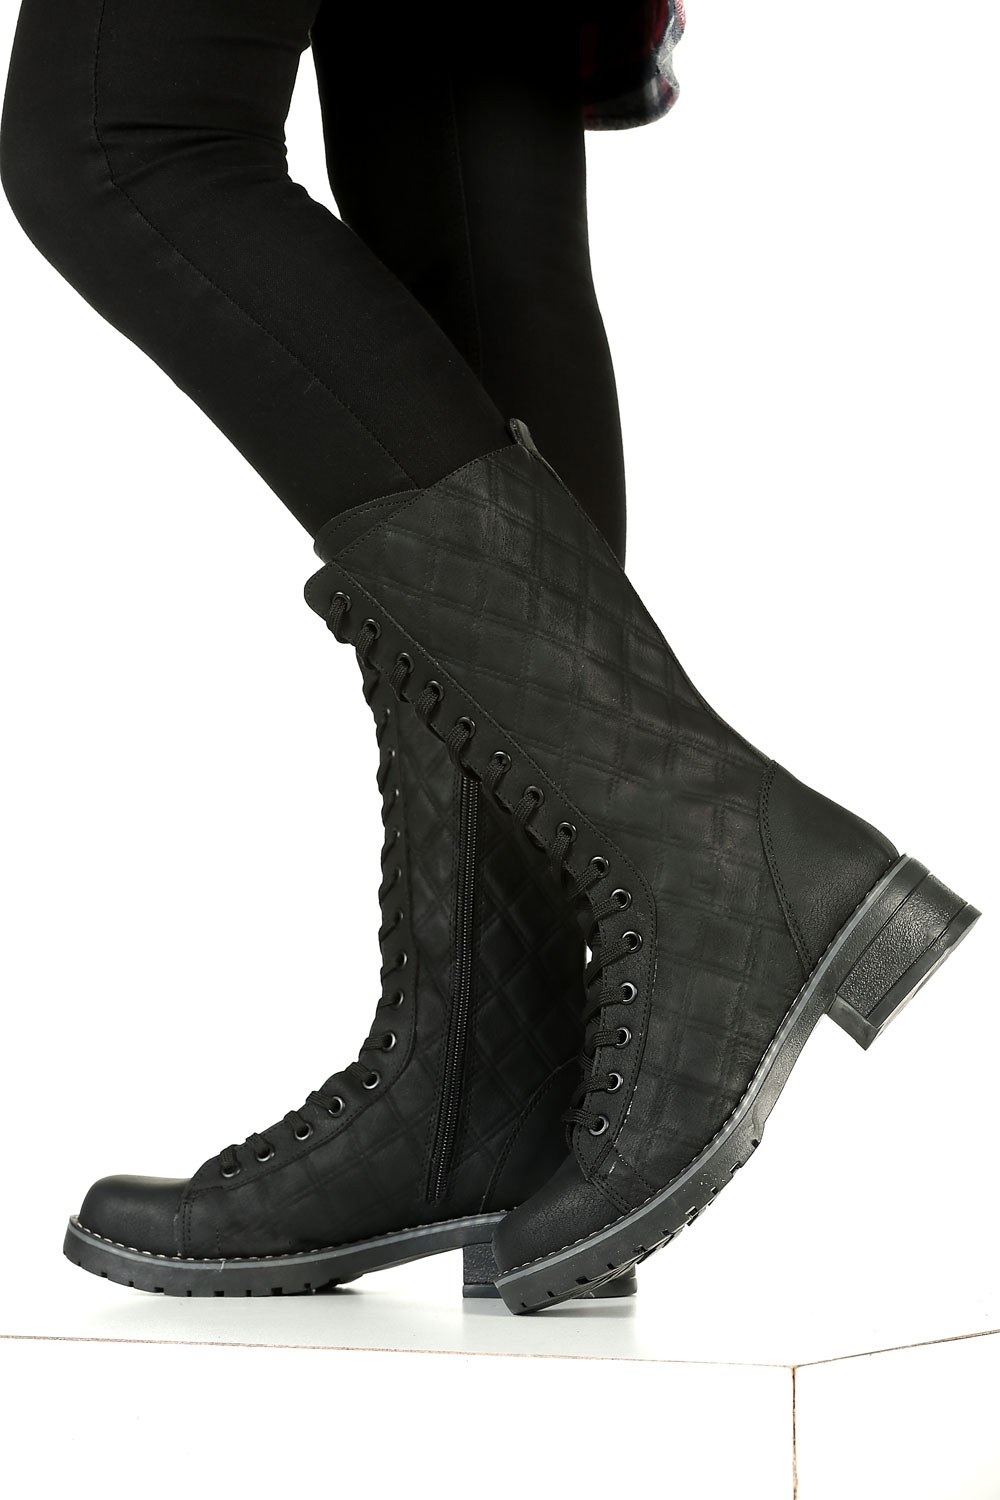 lace up boot with zipper